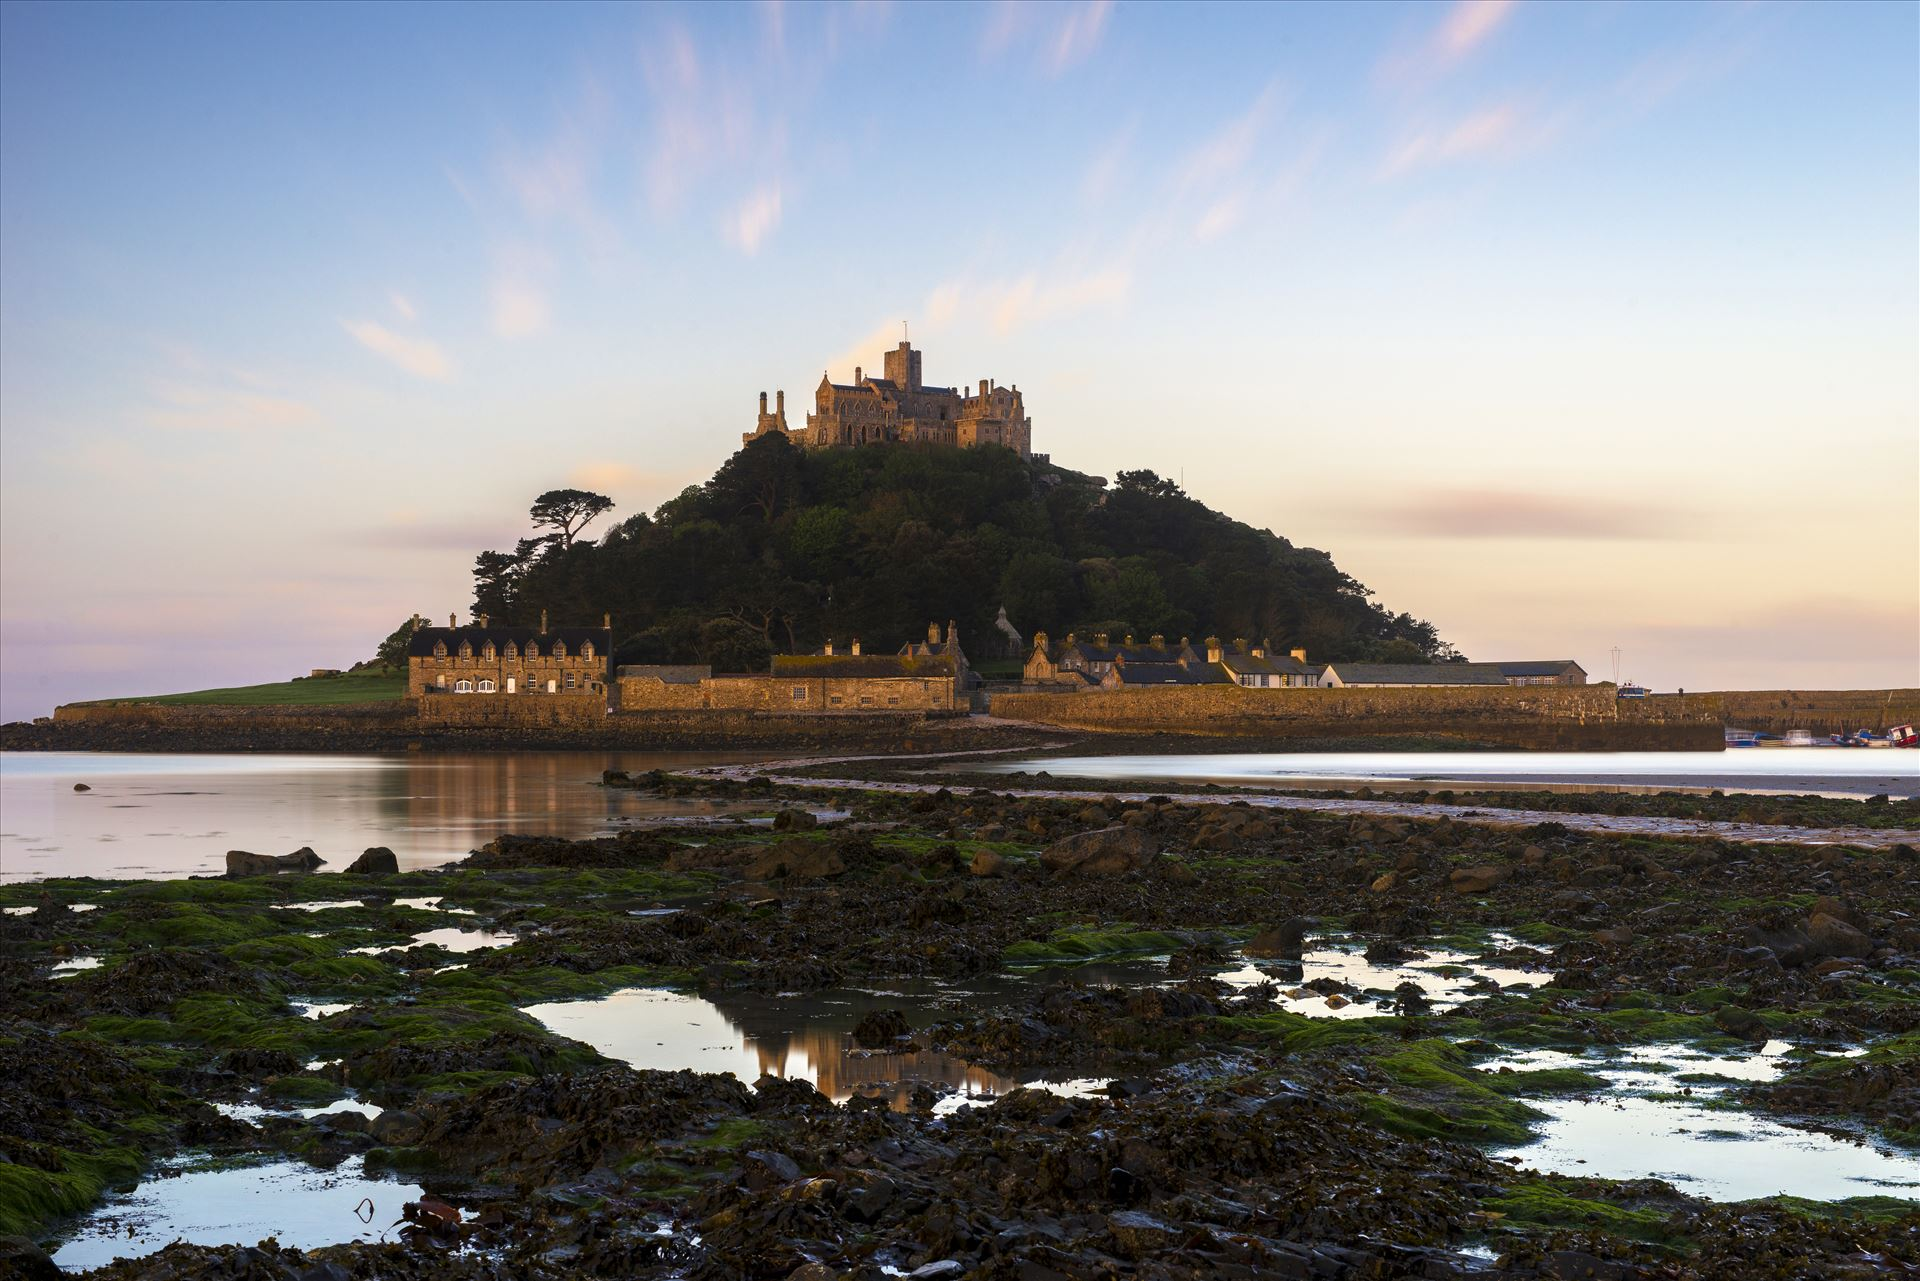 St. Michael's Reflection - I decided to experiment with a different position to photograph St. Michael's Mount, by venturing onto the rocks. I was looking for any reflections to add some symmetry to my landscape. by James Etchells Photography